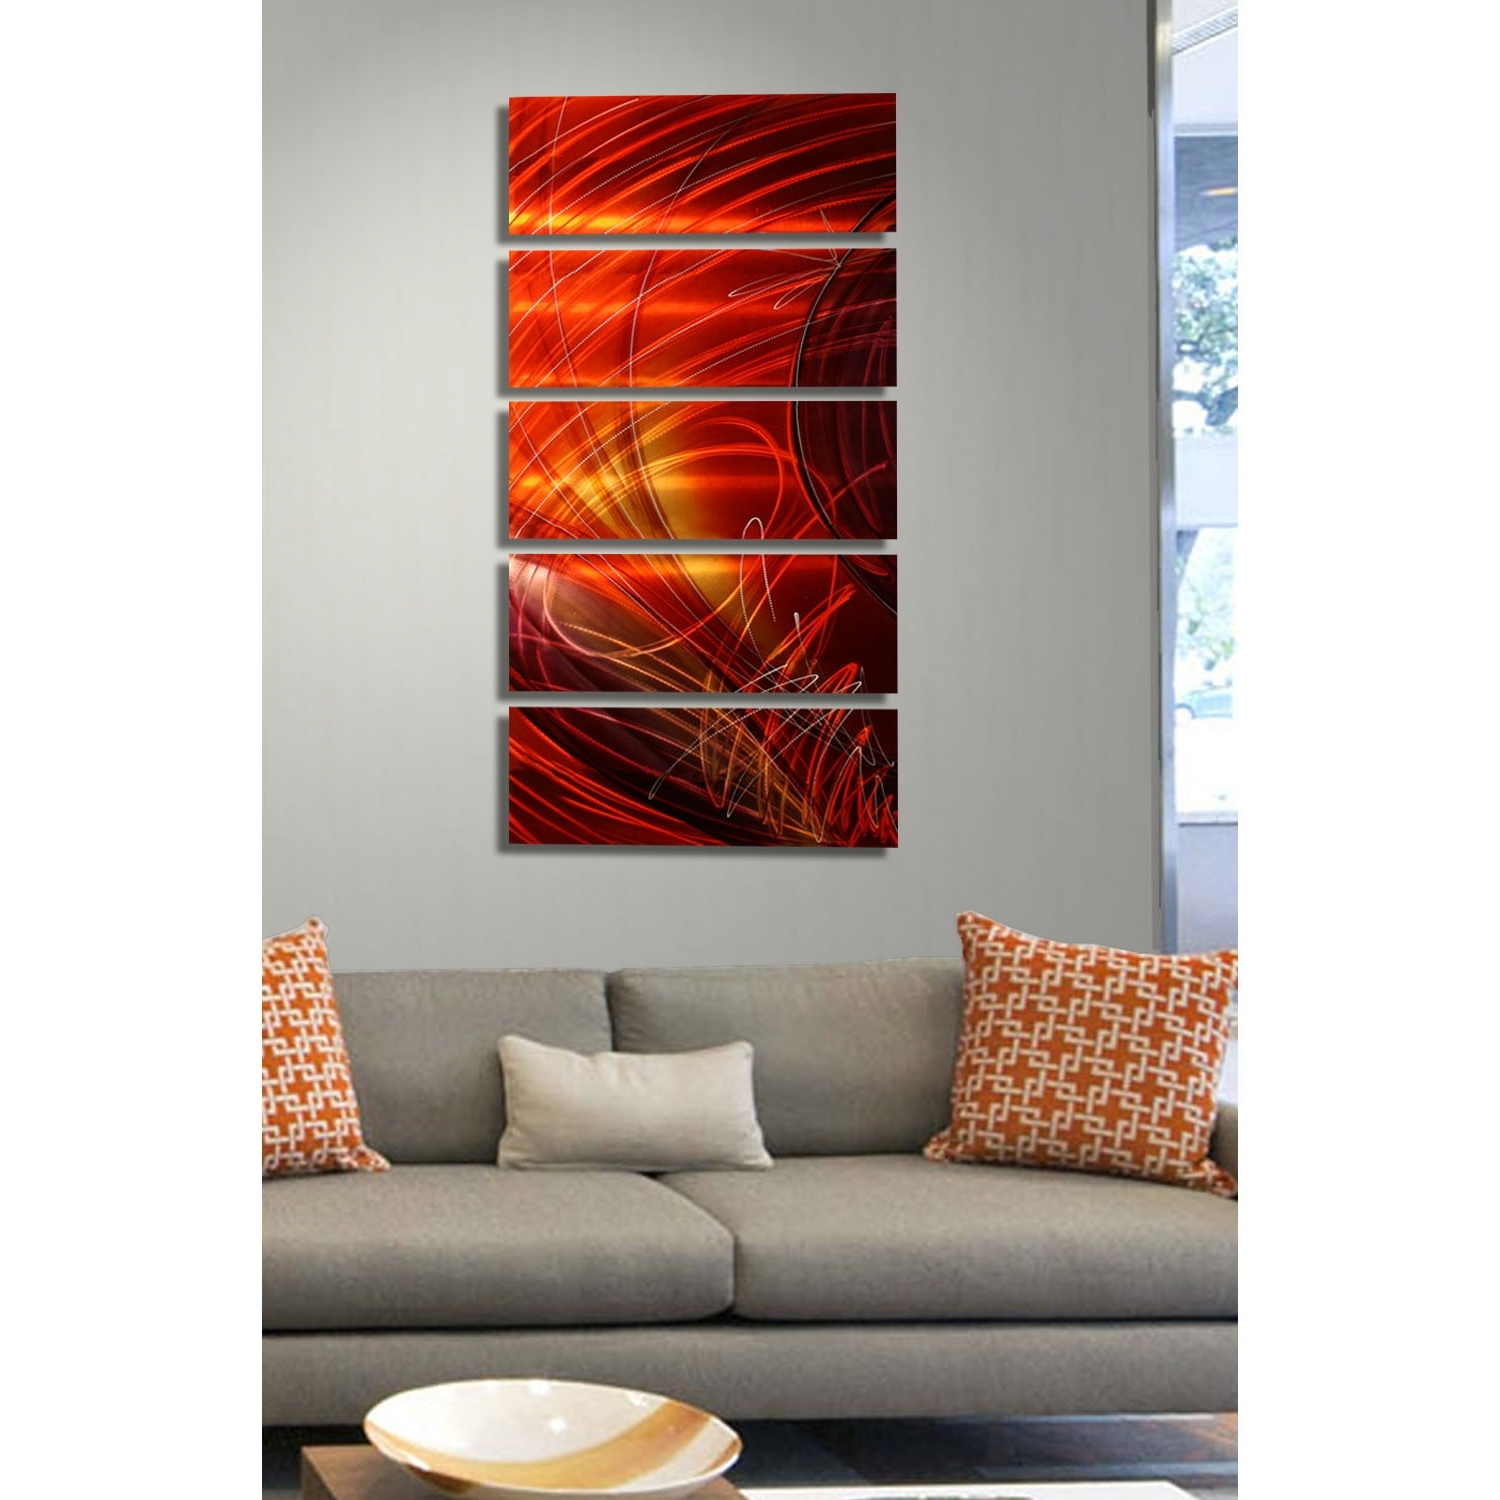 5 Panel Wall Art Within Latest Ruby Sky – Red, Gold And Purple Metal Wall Art – 5 Panel Wall Décor (View 5 of 15)